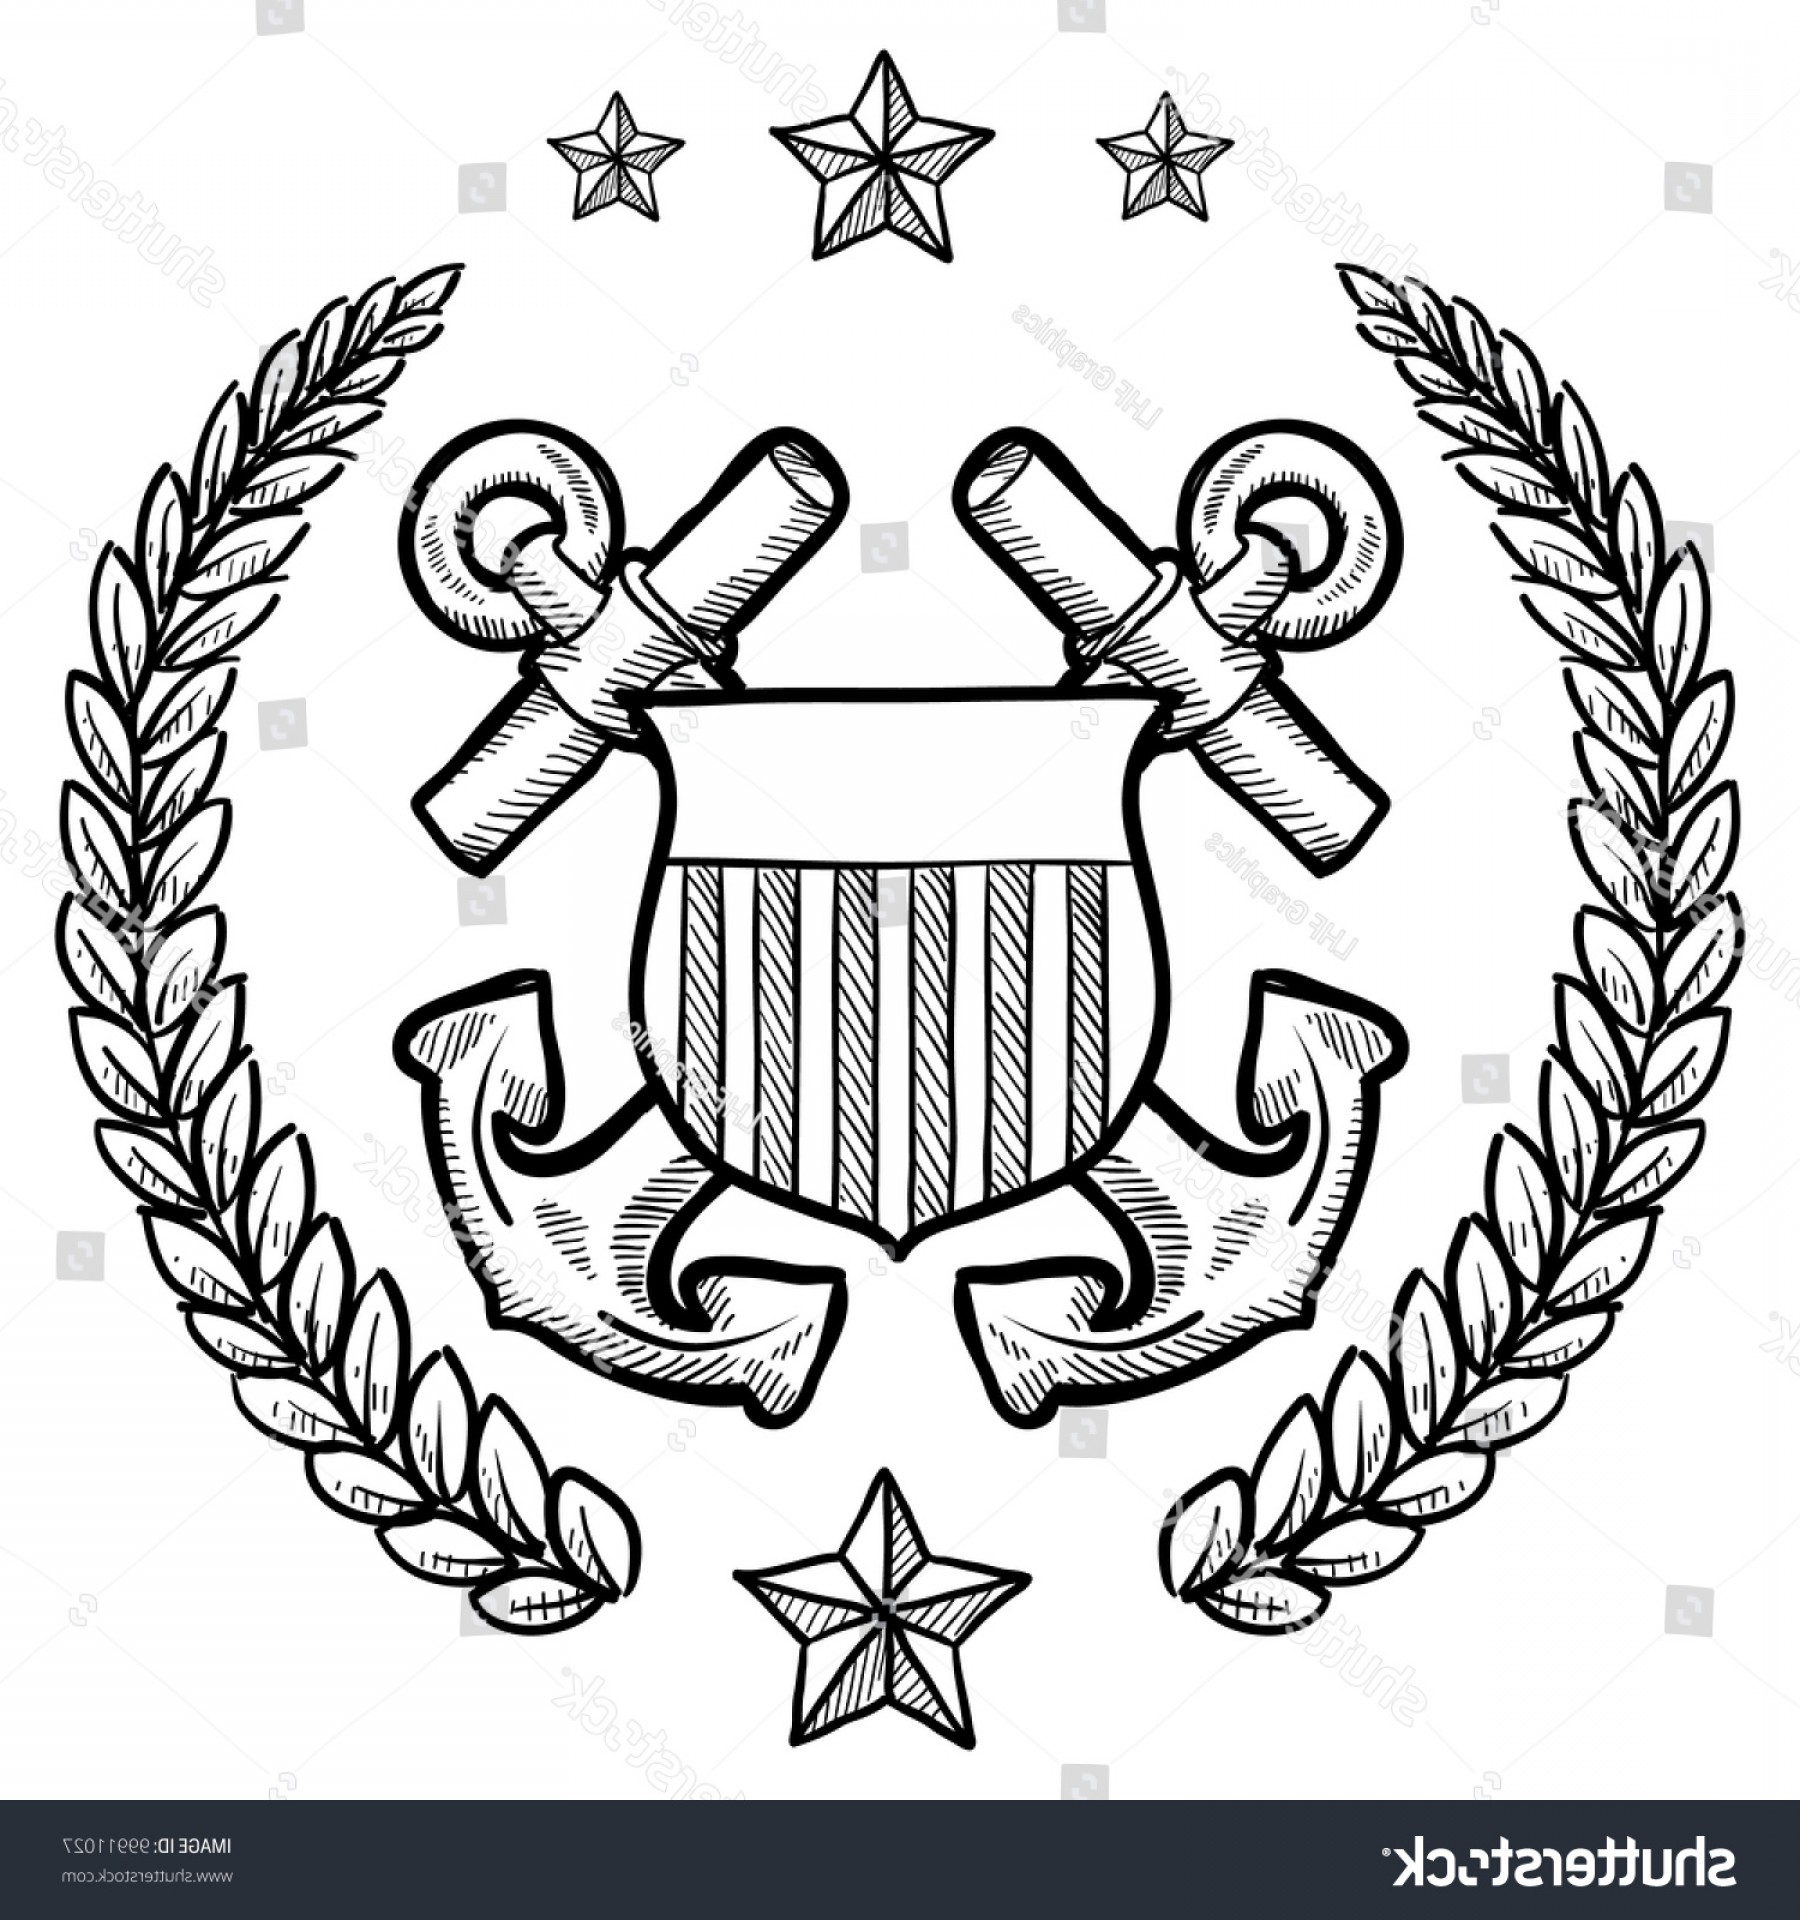 U S. Navy Logo Vector: Doodle Style Military Rank Insignia Us